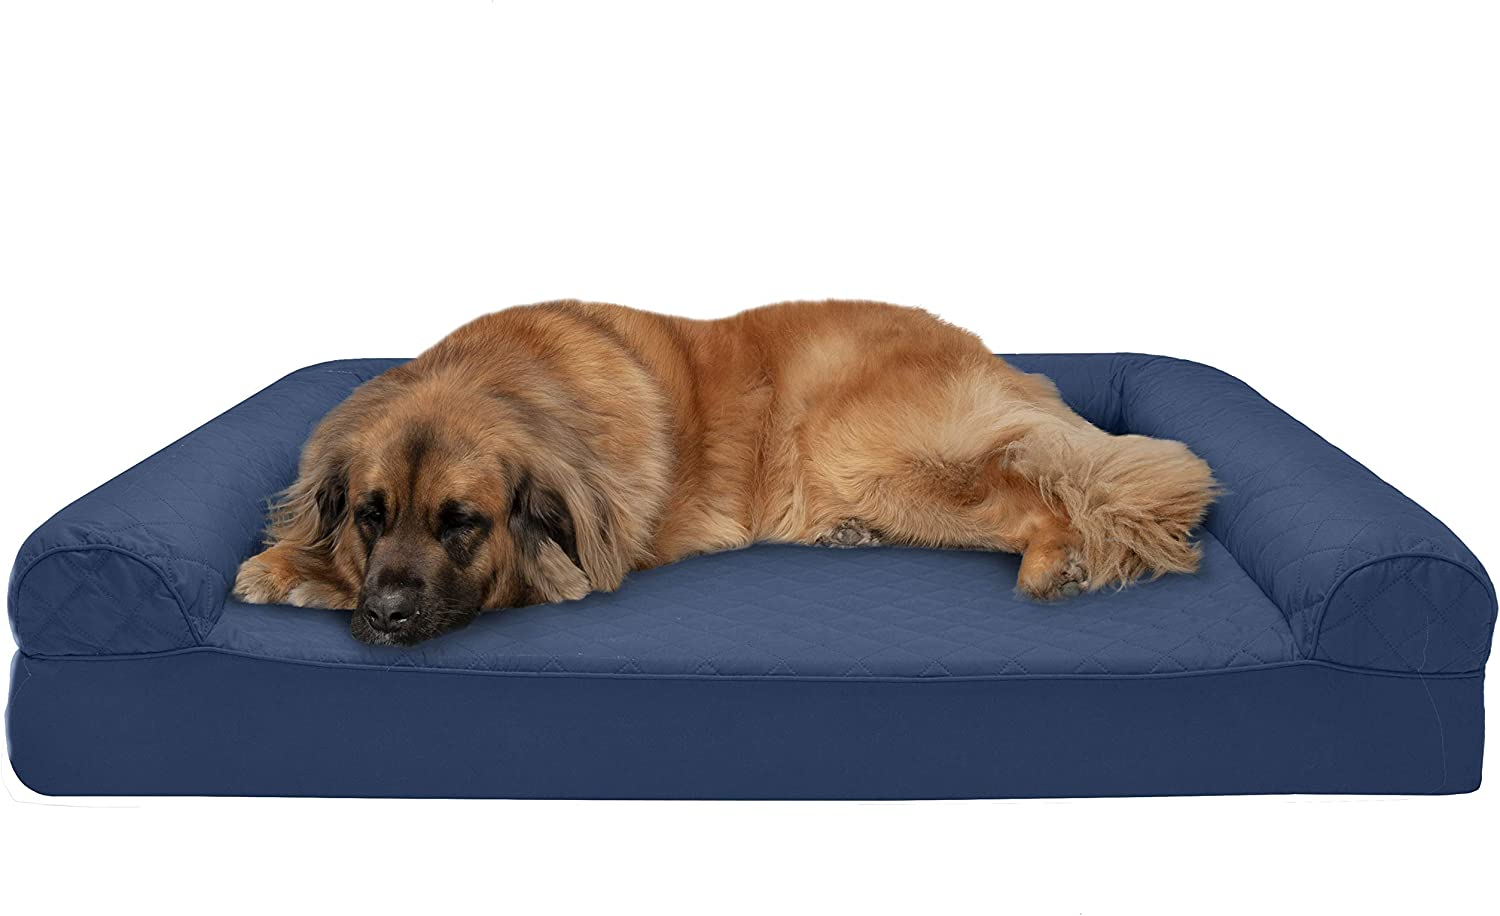 Furhaven Orthopedic Dog Beds for Medium Dealing full price reduction Small and Dogs Sales of SALE items from new works Large